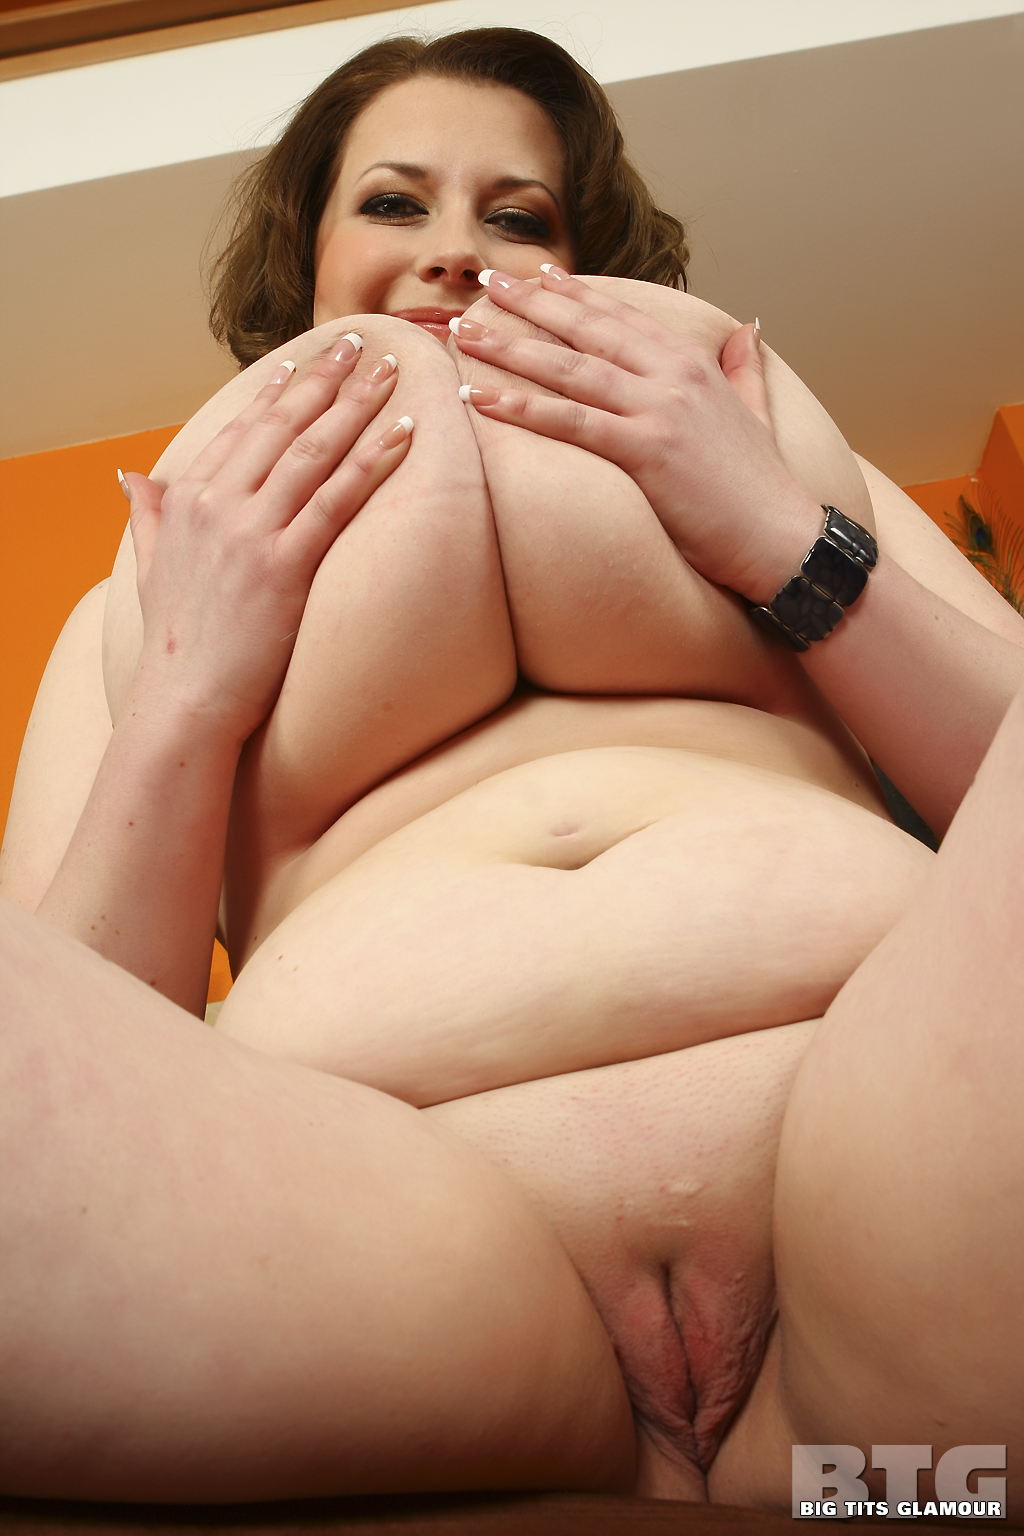 from Asa big girls naked